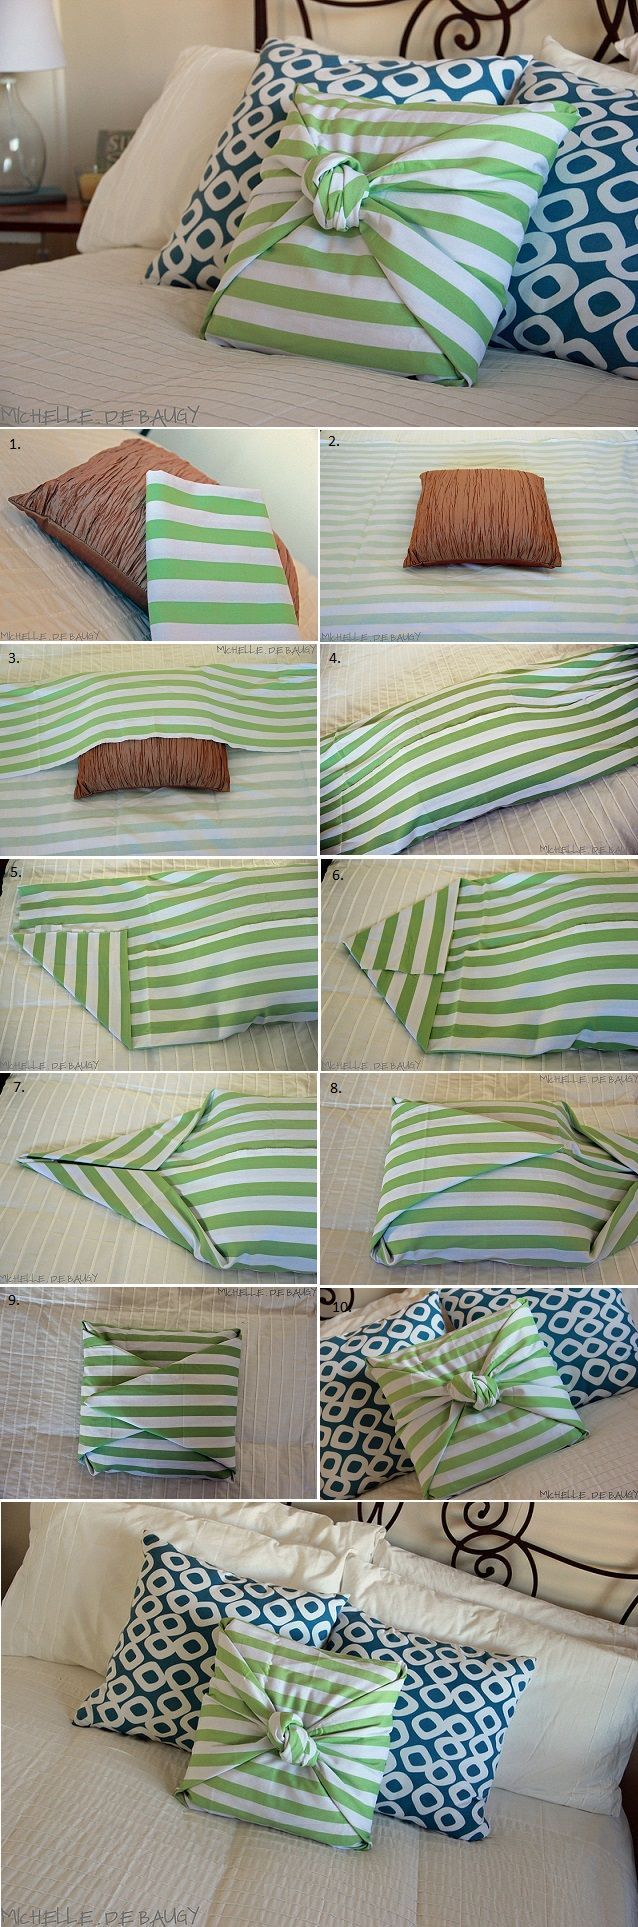 How to make a super easy No Sew Pillow Cover